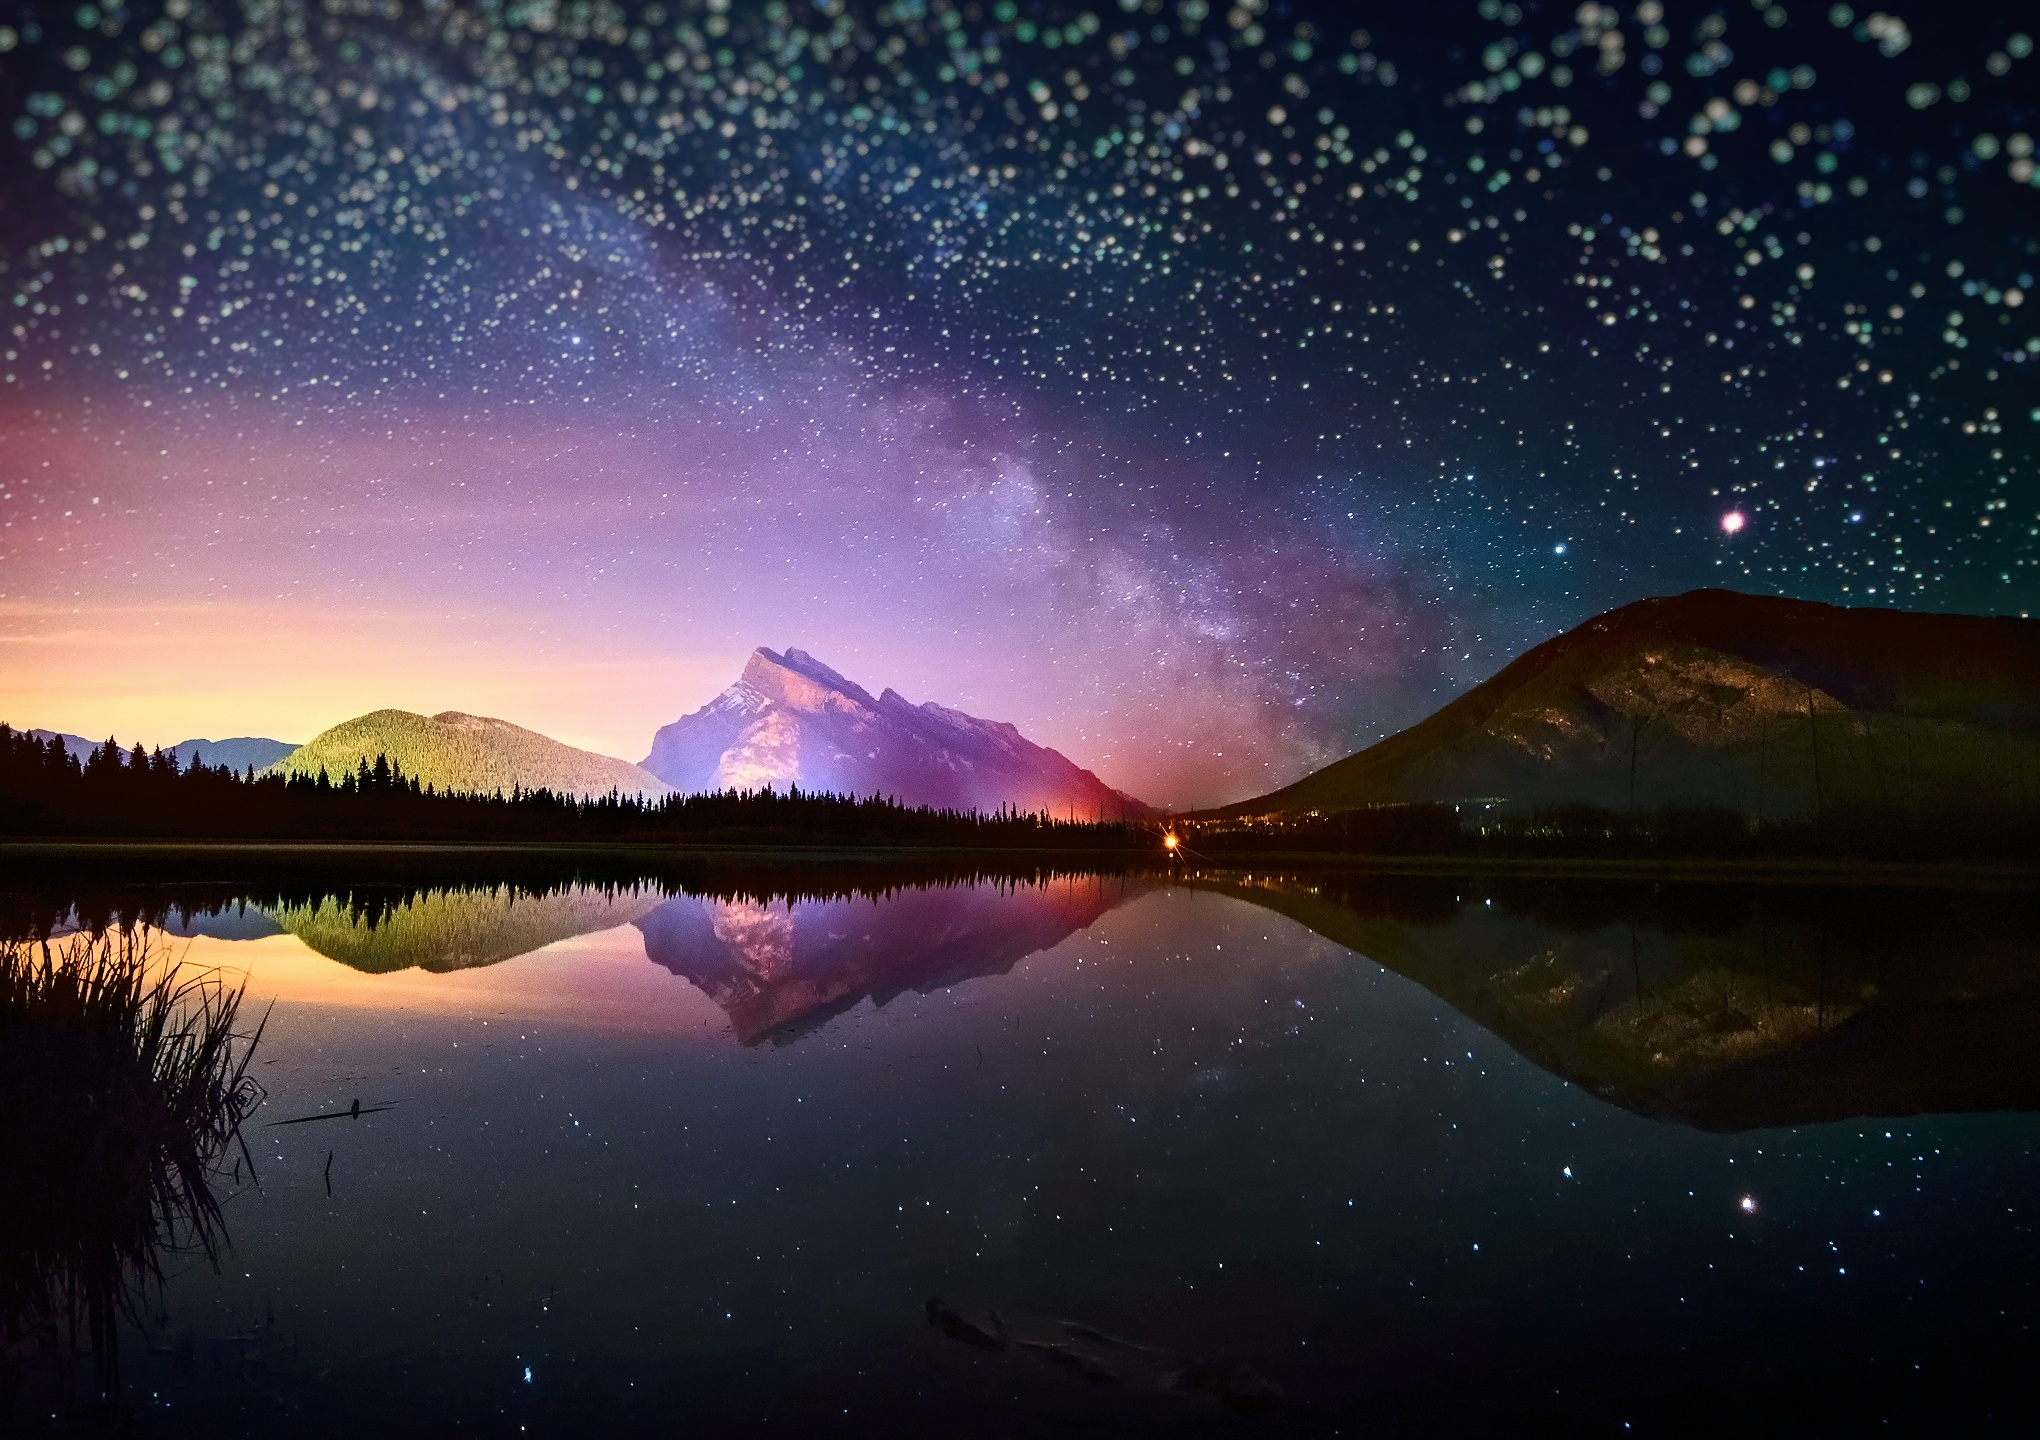 im73 Night Sky HD Wallpaper 2040x1440 px   Picseriocom 2040x1440